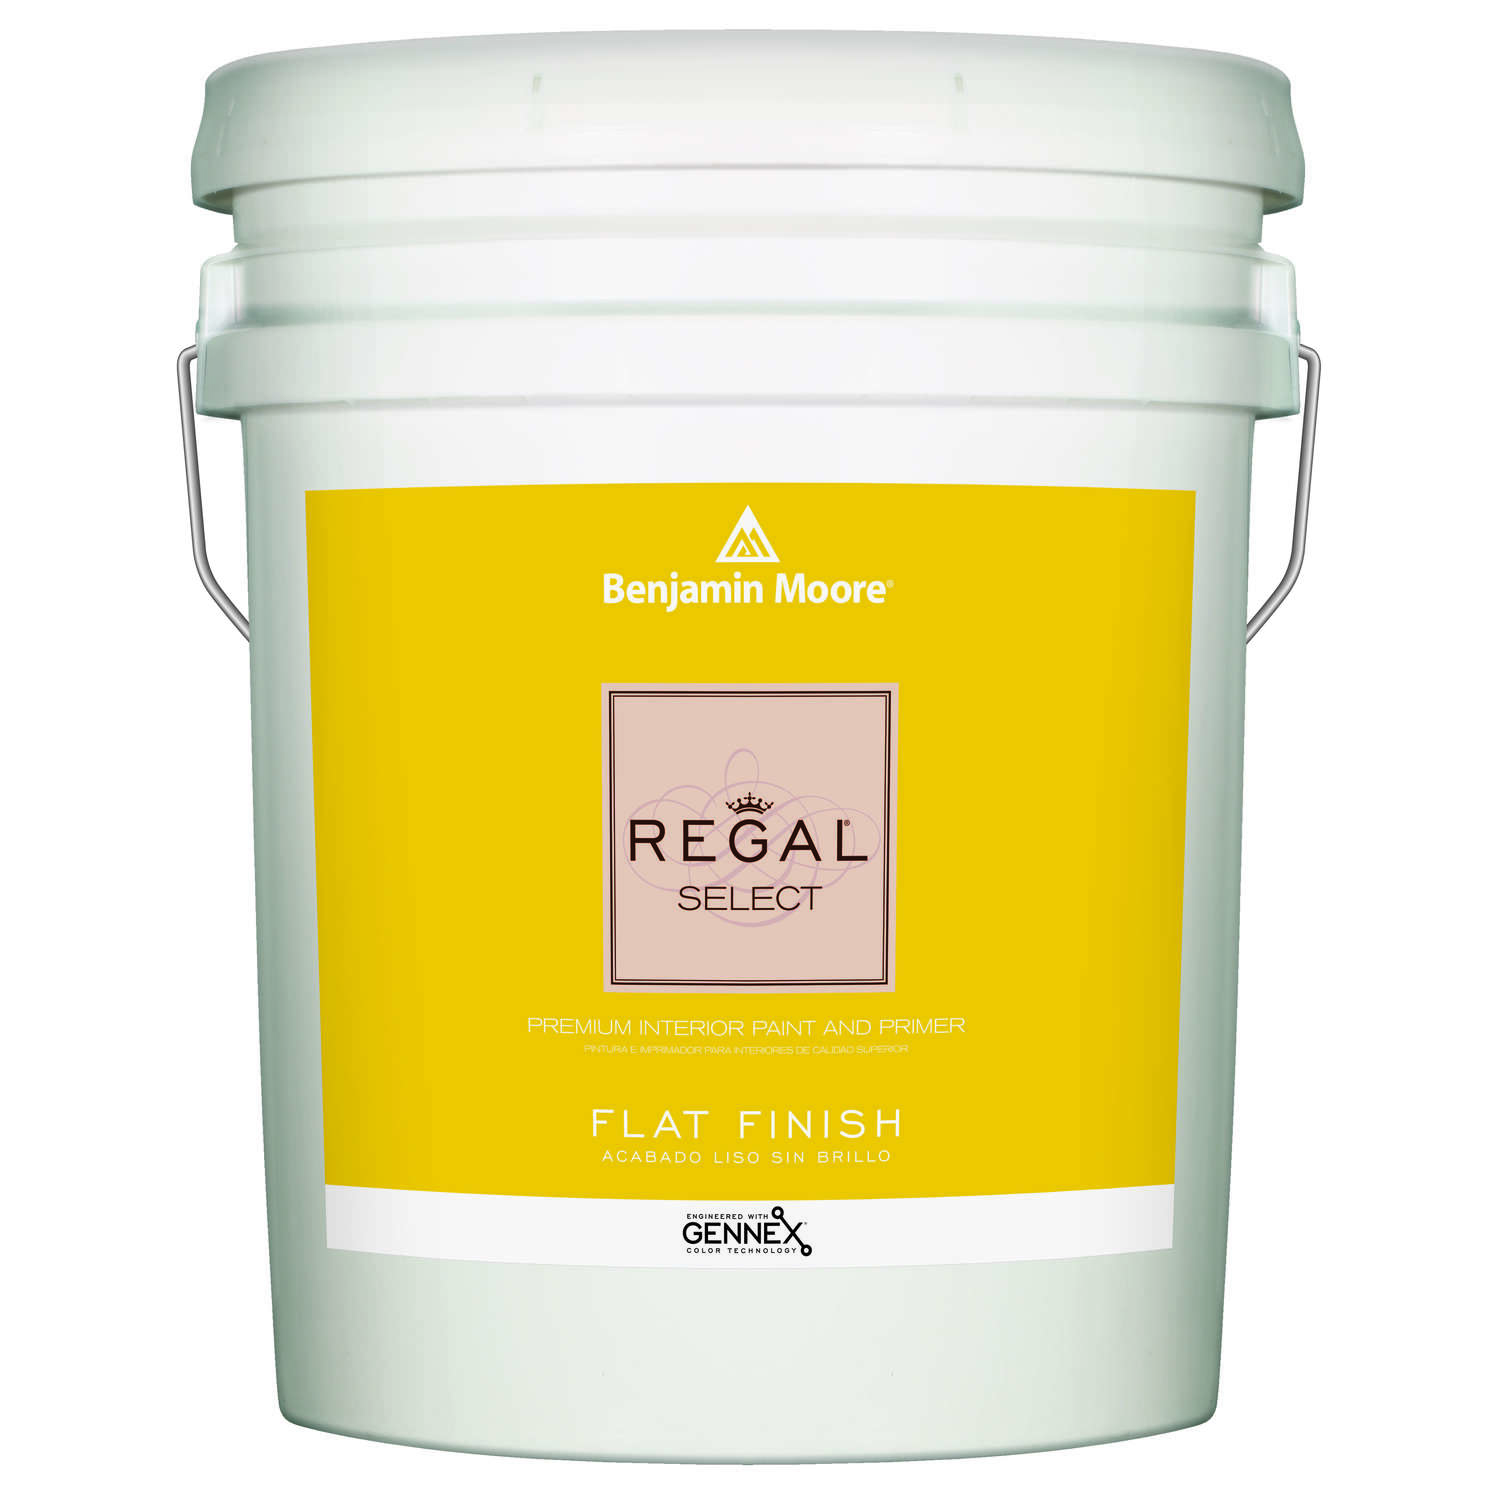 Benjamin Moore  Regal Select  Flat  Base 4  Paint and Primer  Interior  5 gal.